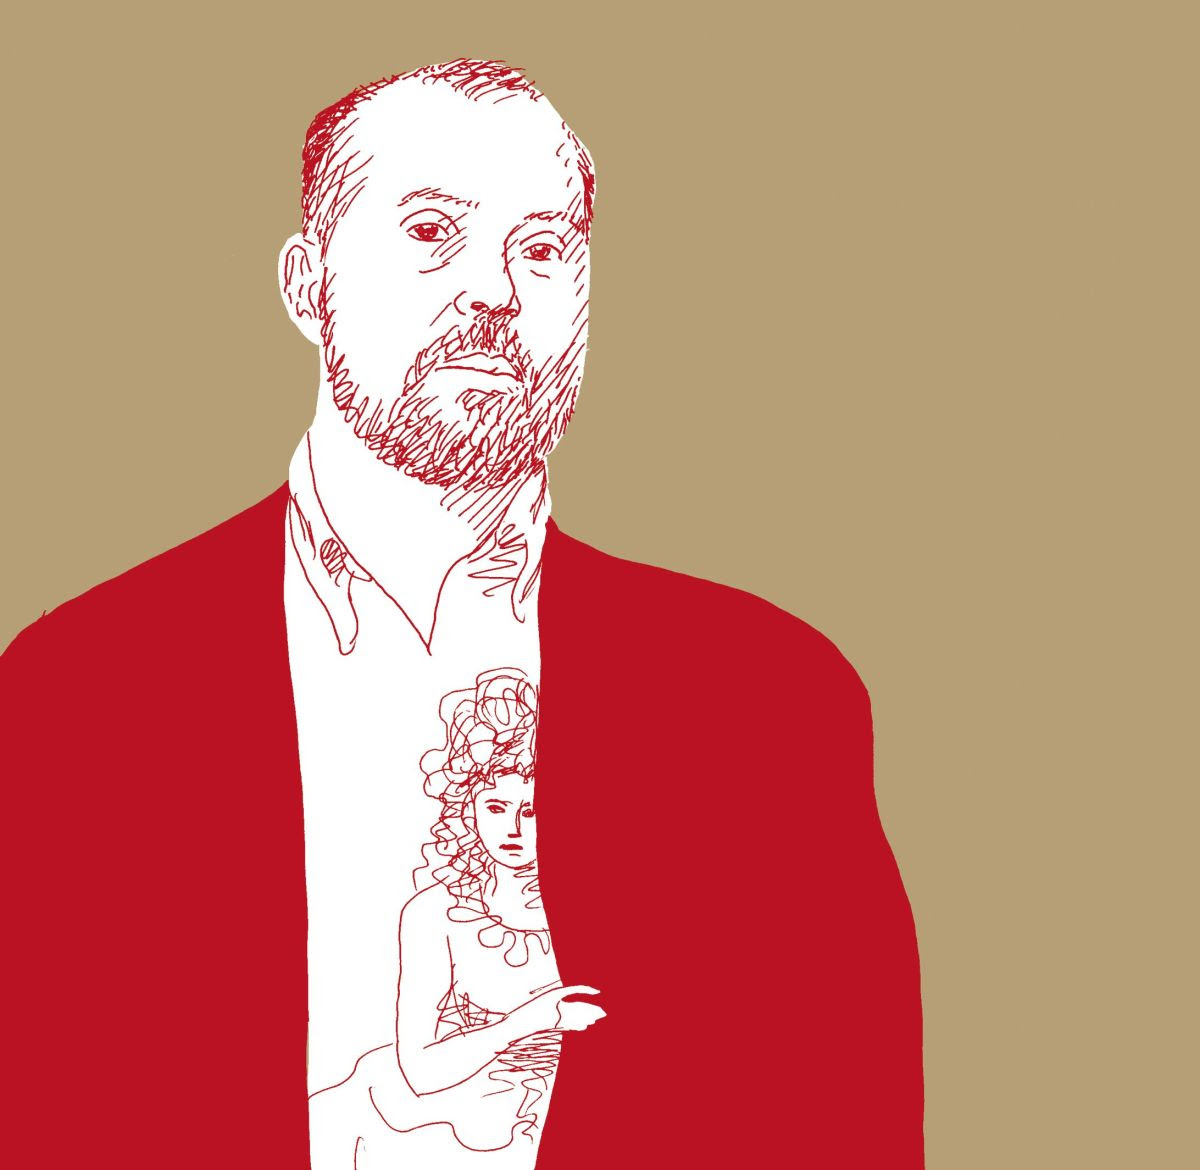 Alexander Chee's second novel is operatic both in content and in style.